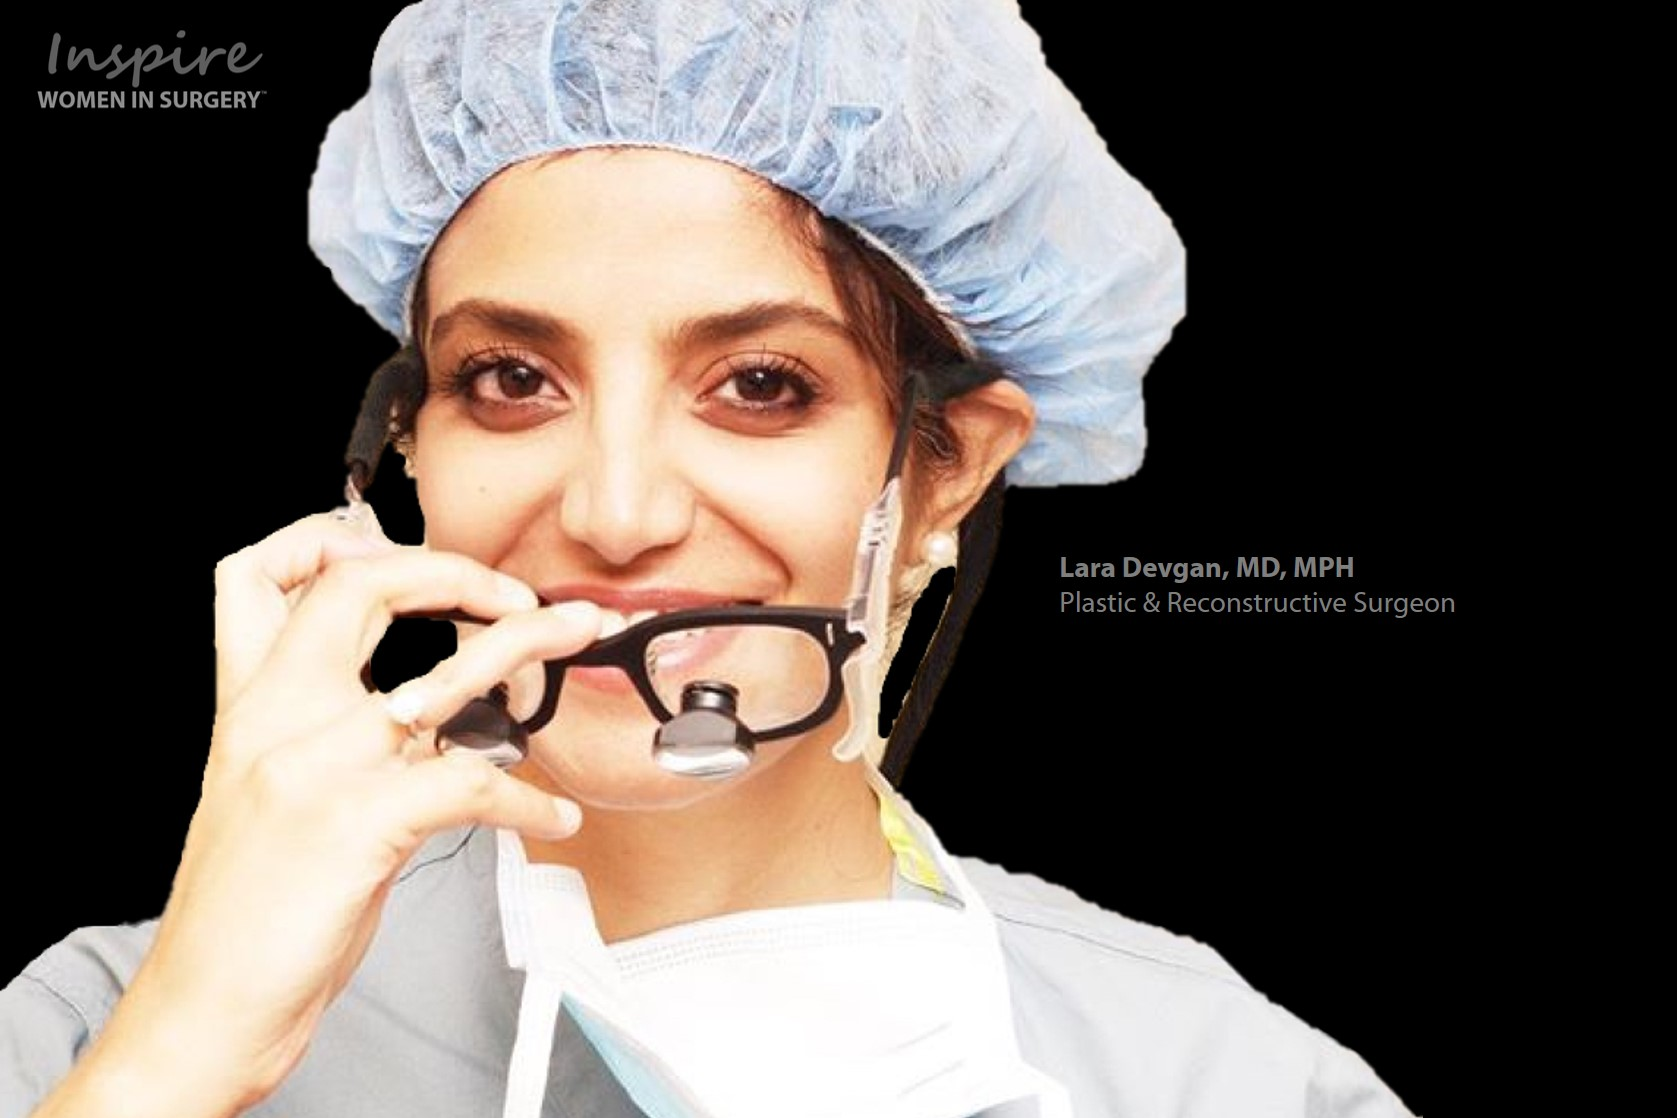 Click to view Dr. Devgan's feature on Inspiring Women In Surgery.